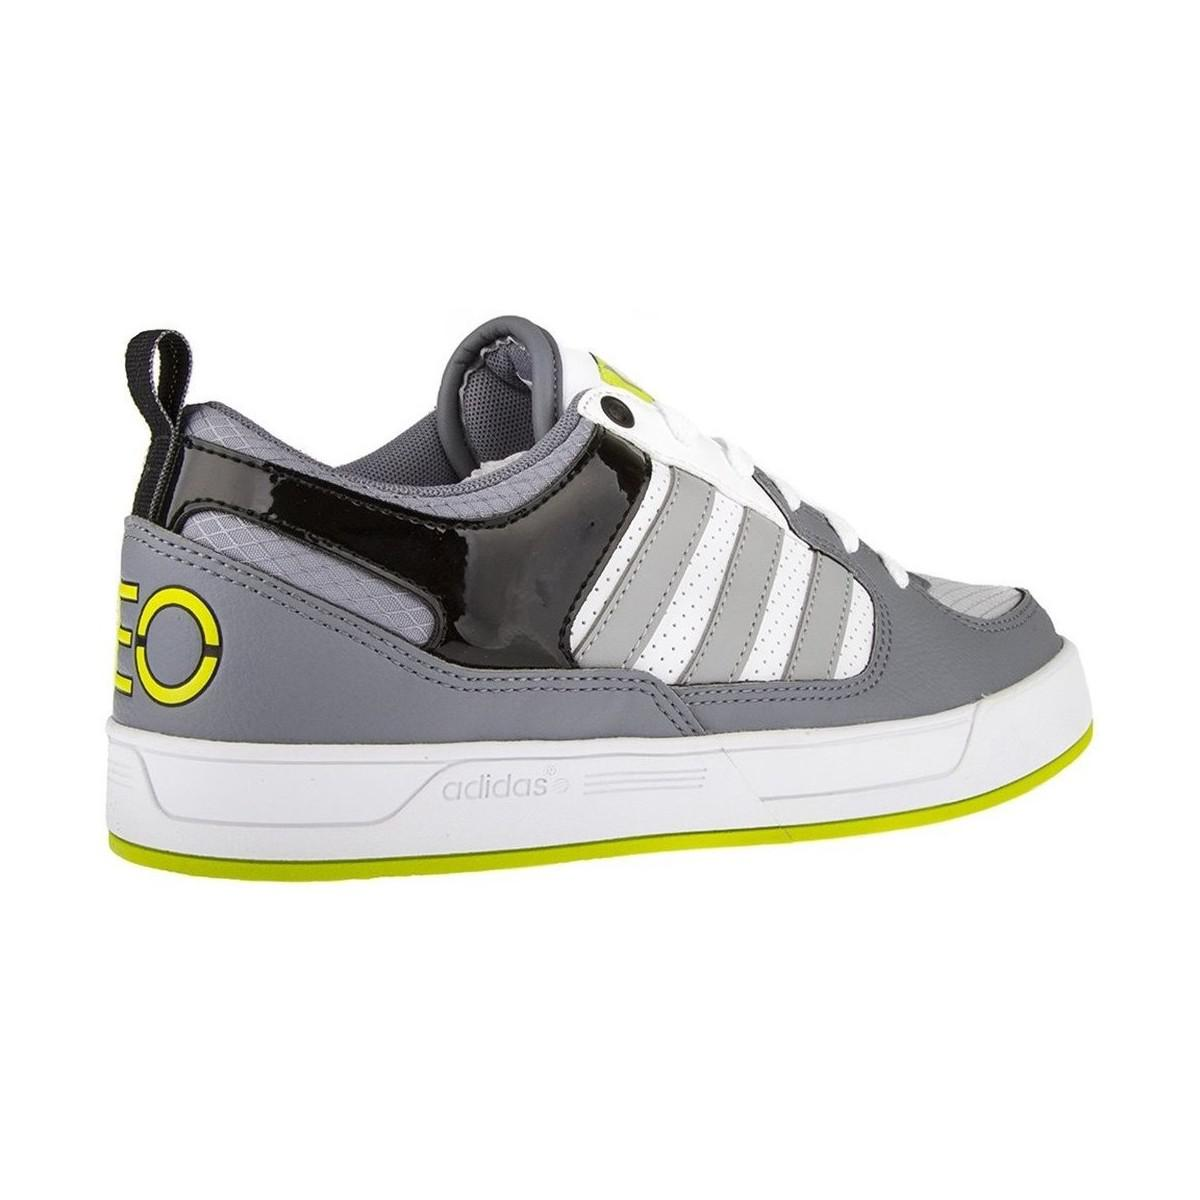 adidas X73662 Men's Shoes (trainers) In Grey in Grey for Men